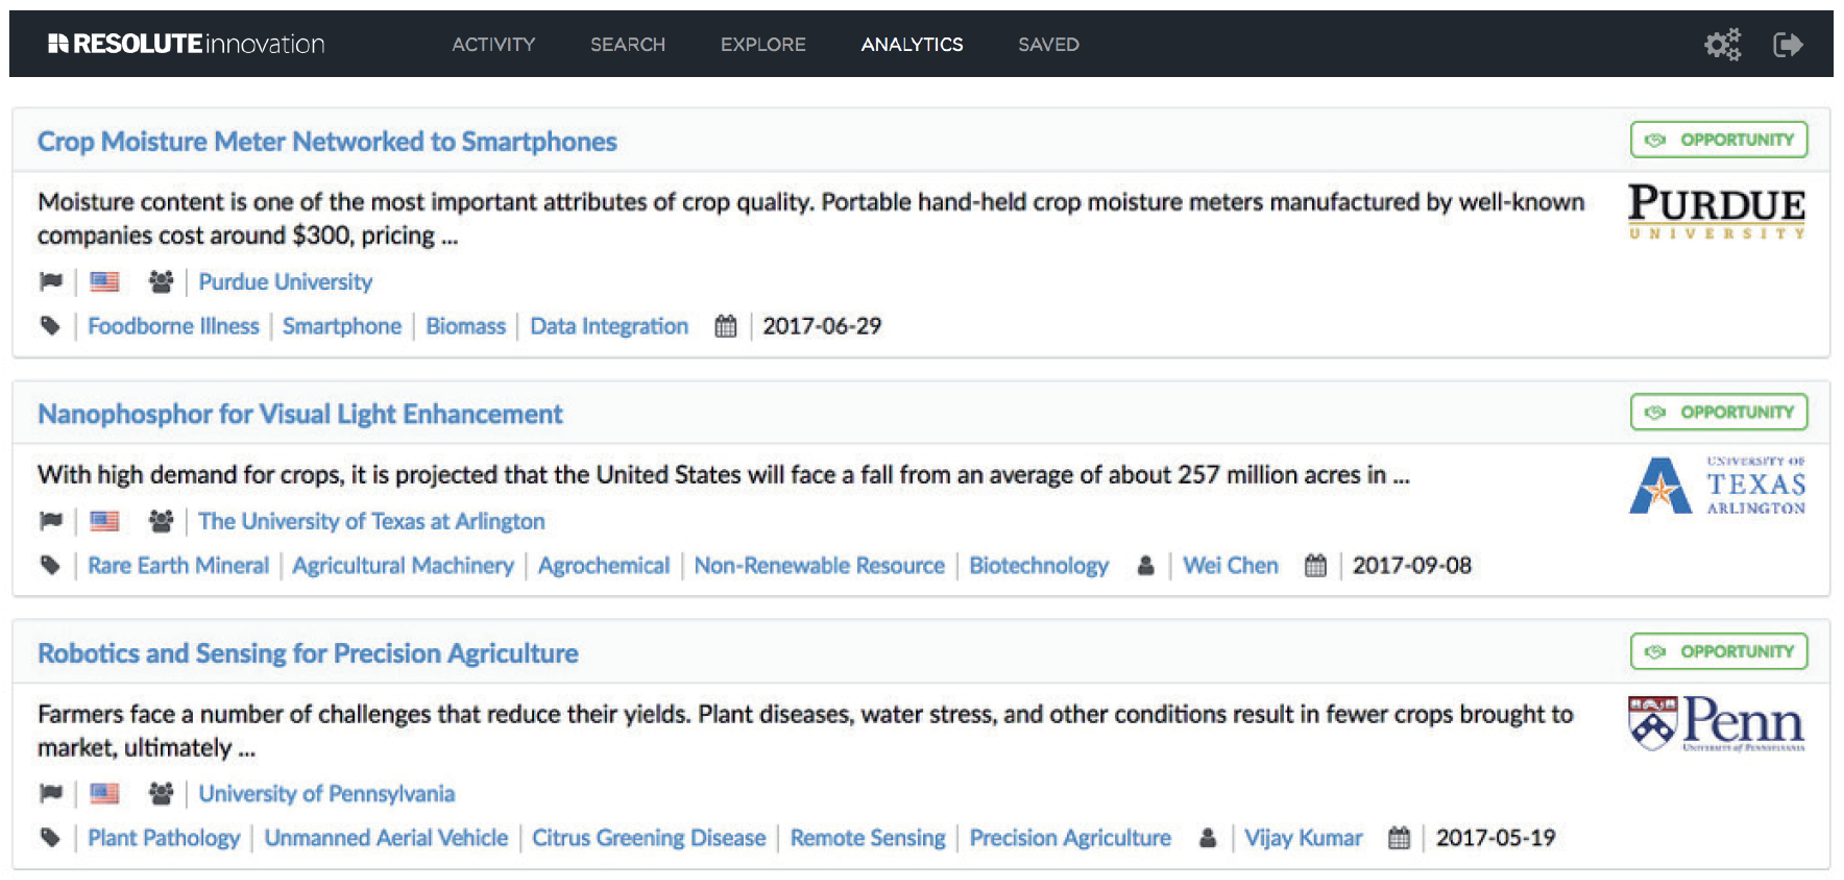 ResoluteAI's scientific discovery engine, Foundation, identifying tech transfer opportunities